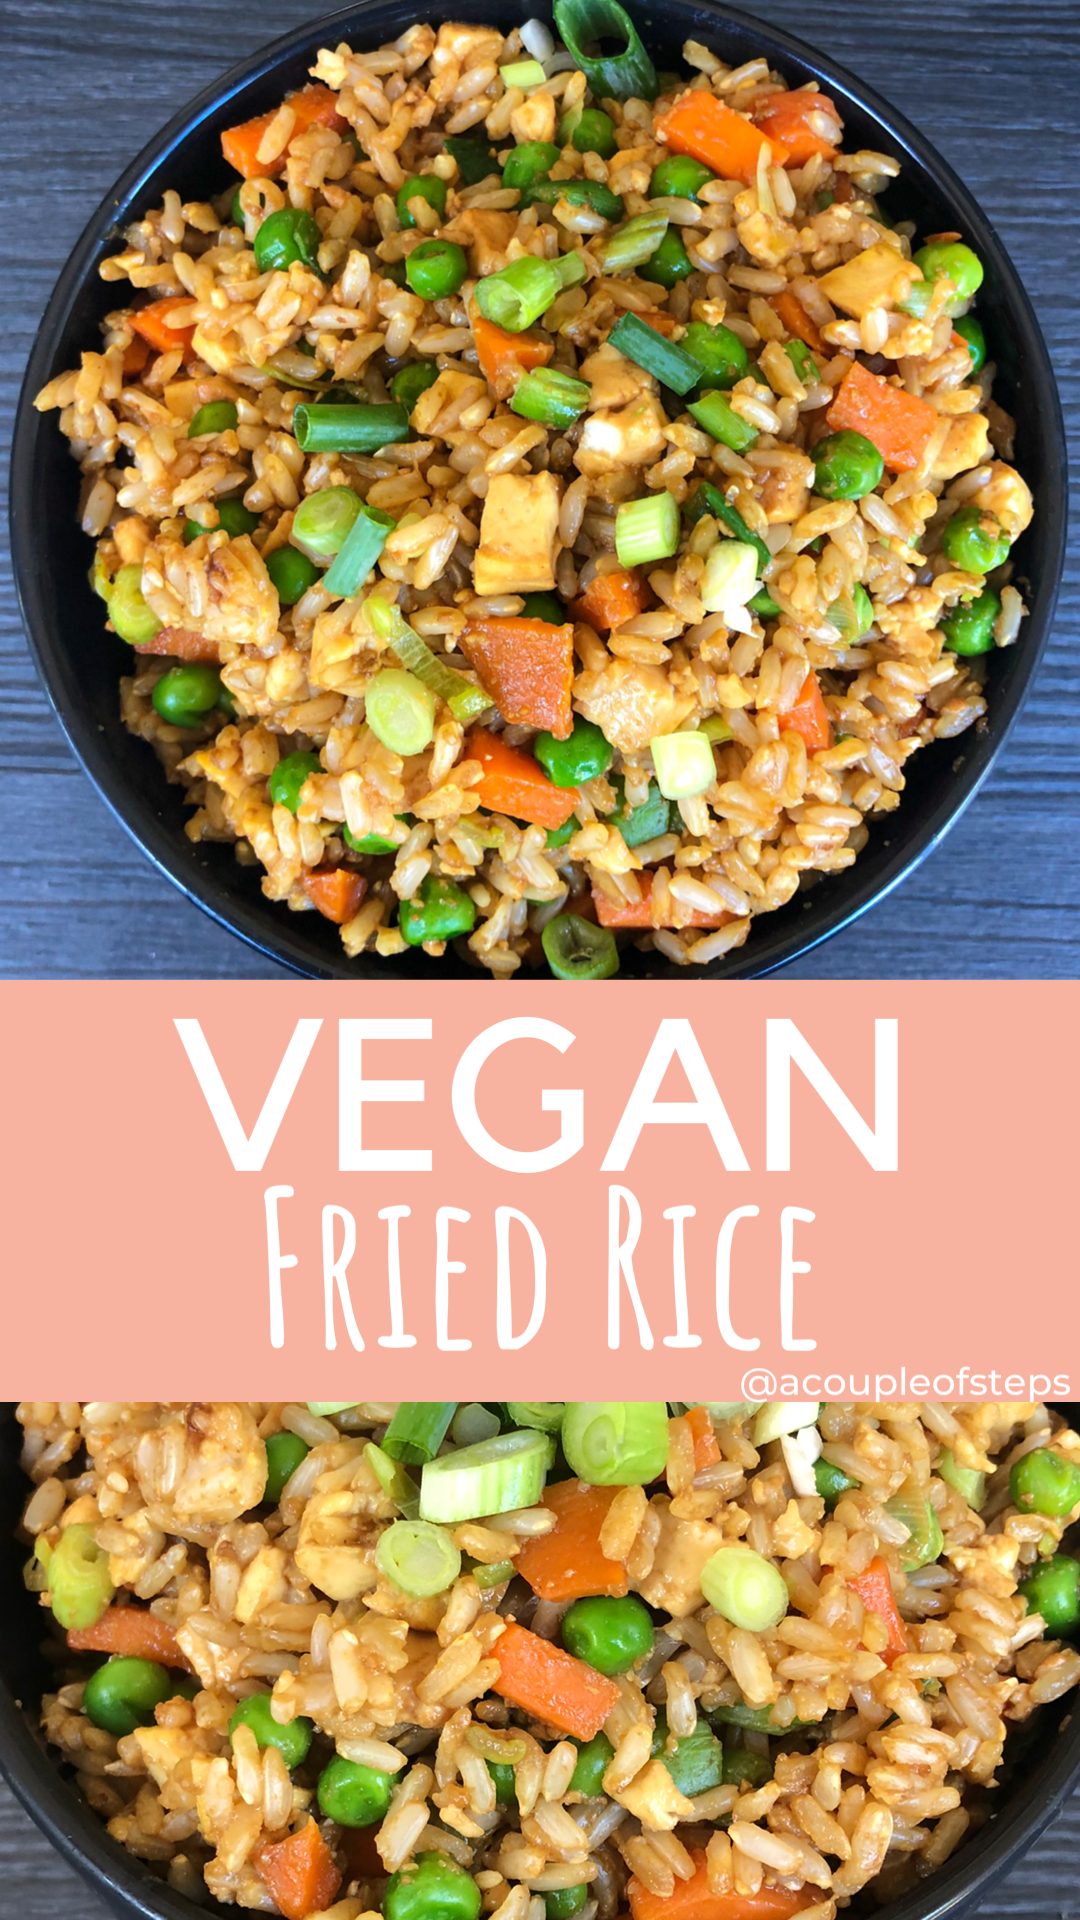 Healthy Vegan Fried Rice Recipe - A Couple Of Steps